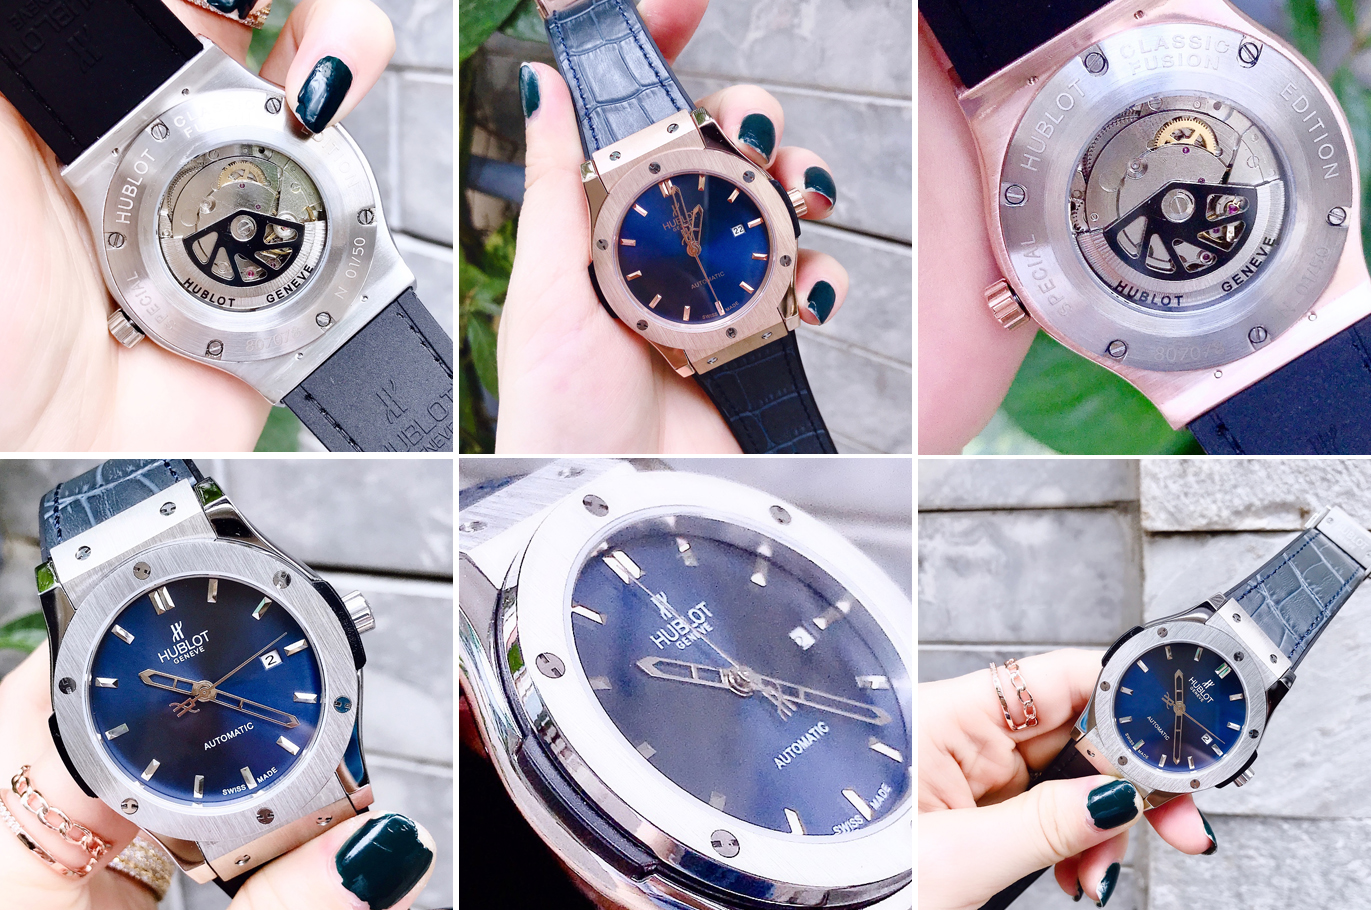 Hinh anh thuc te dong ho Rolex ms 098700